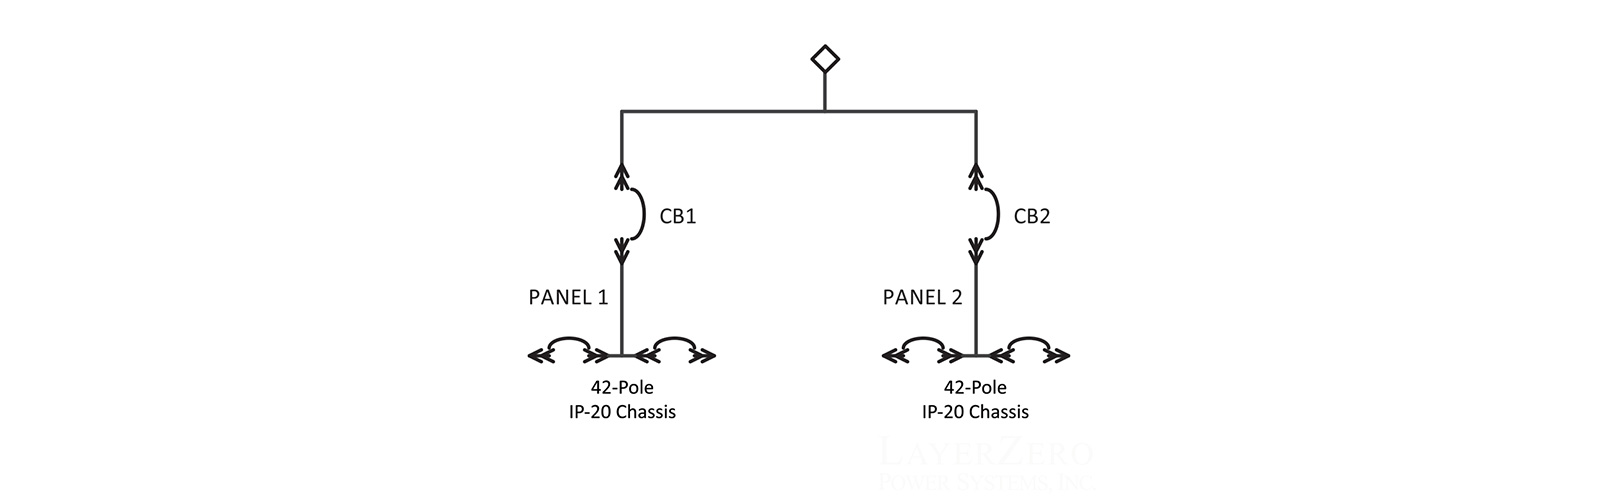 Power Panels Schematic Diagram